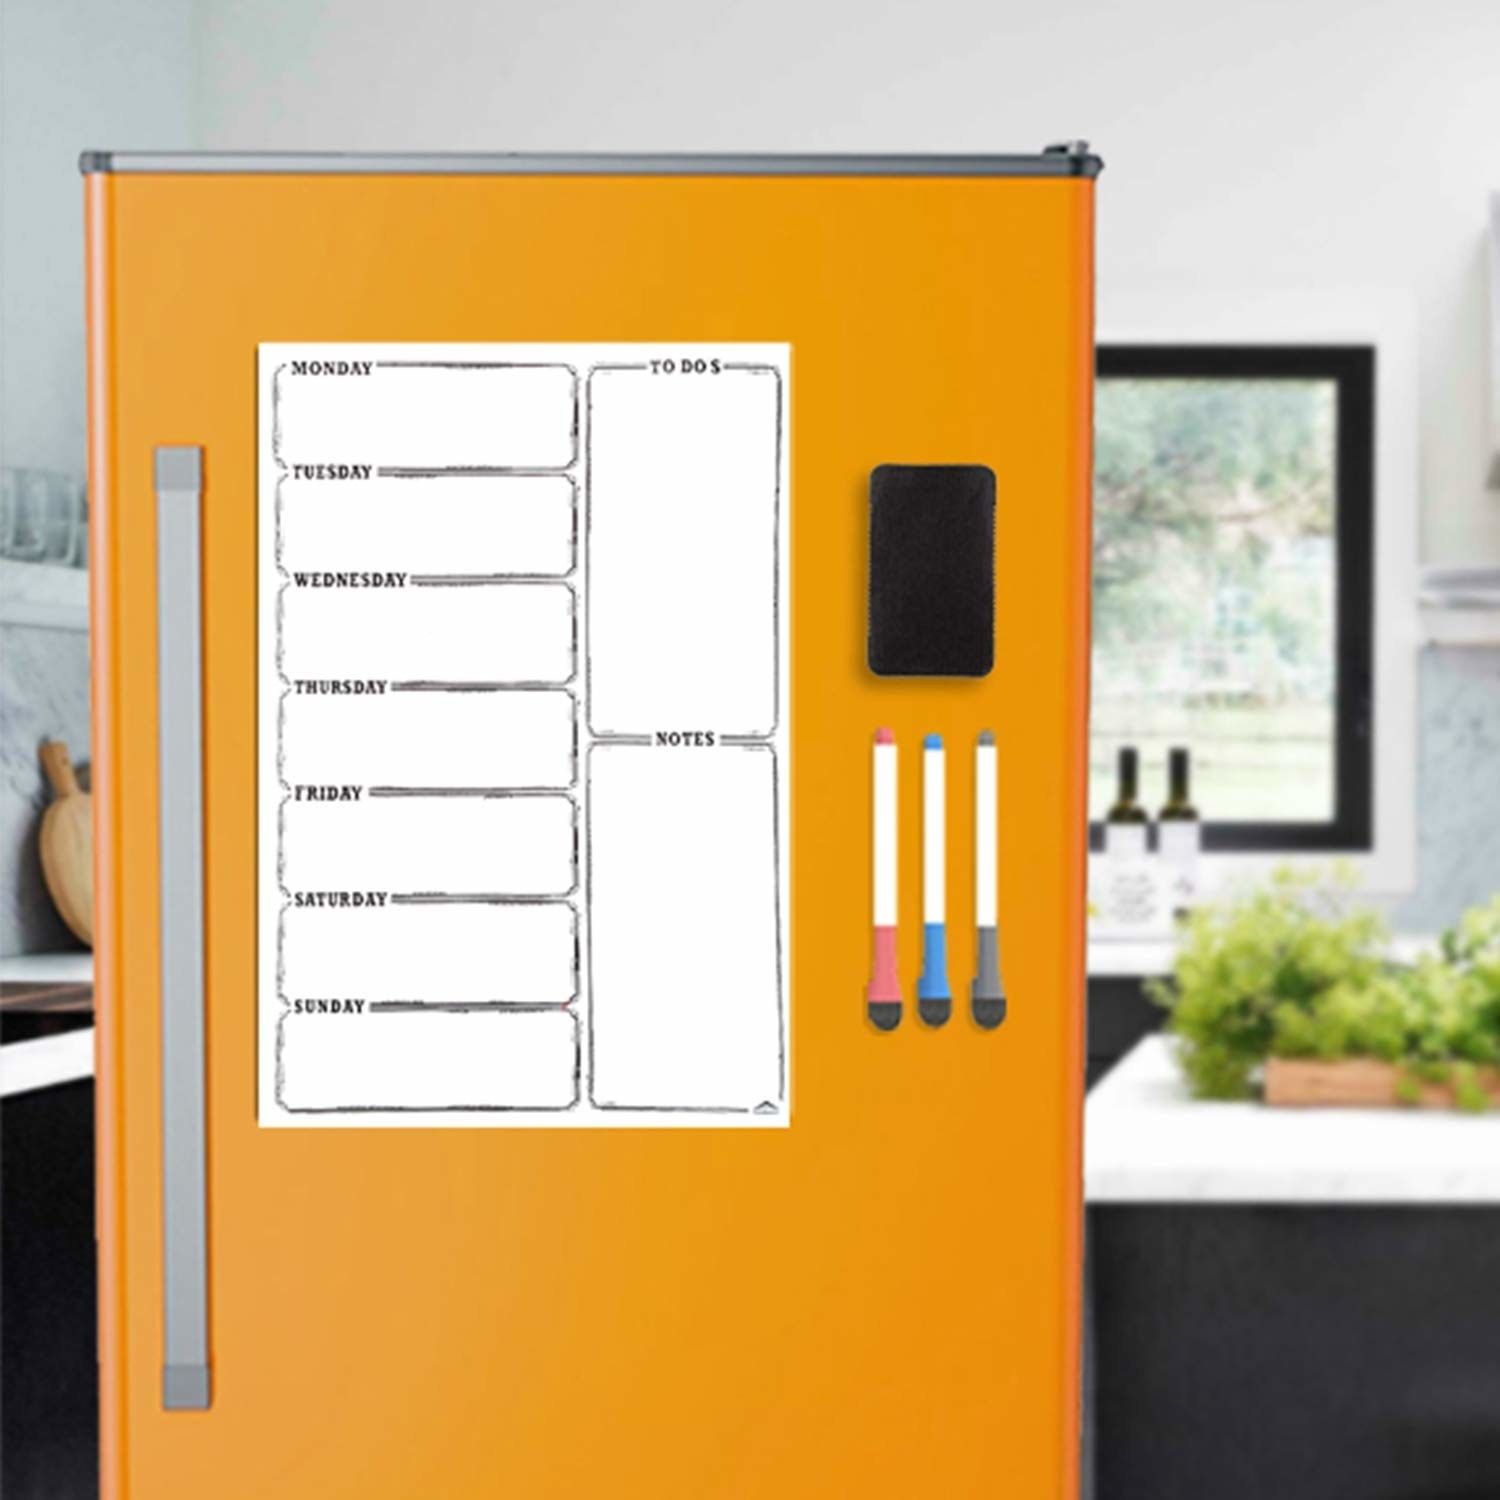 A dry erase planner on an orange wall